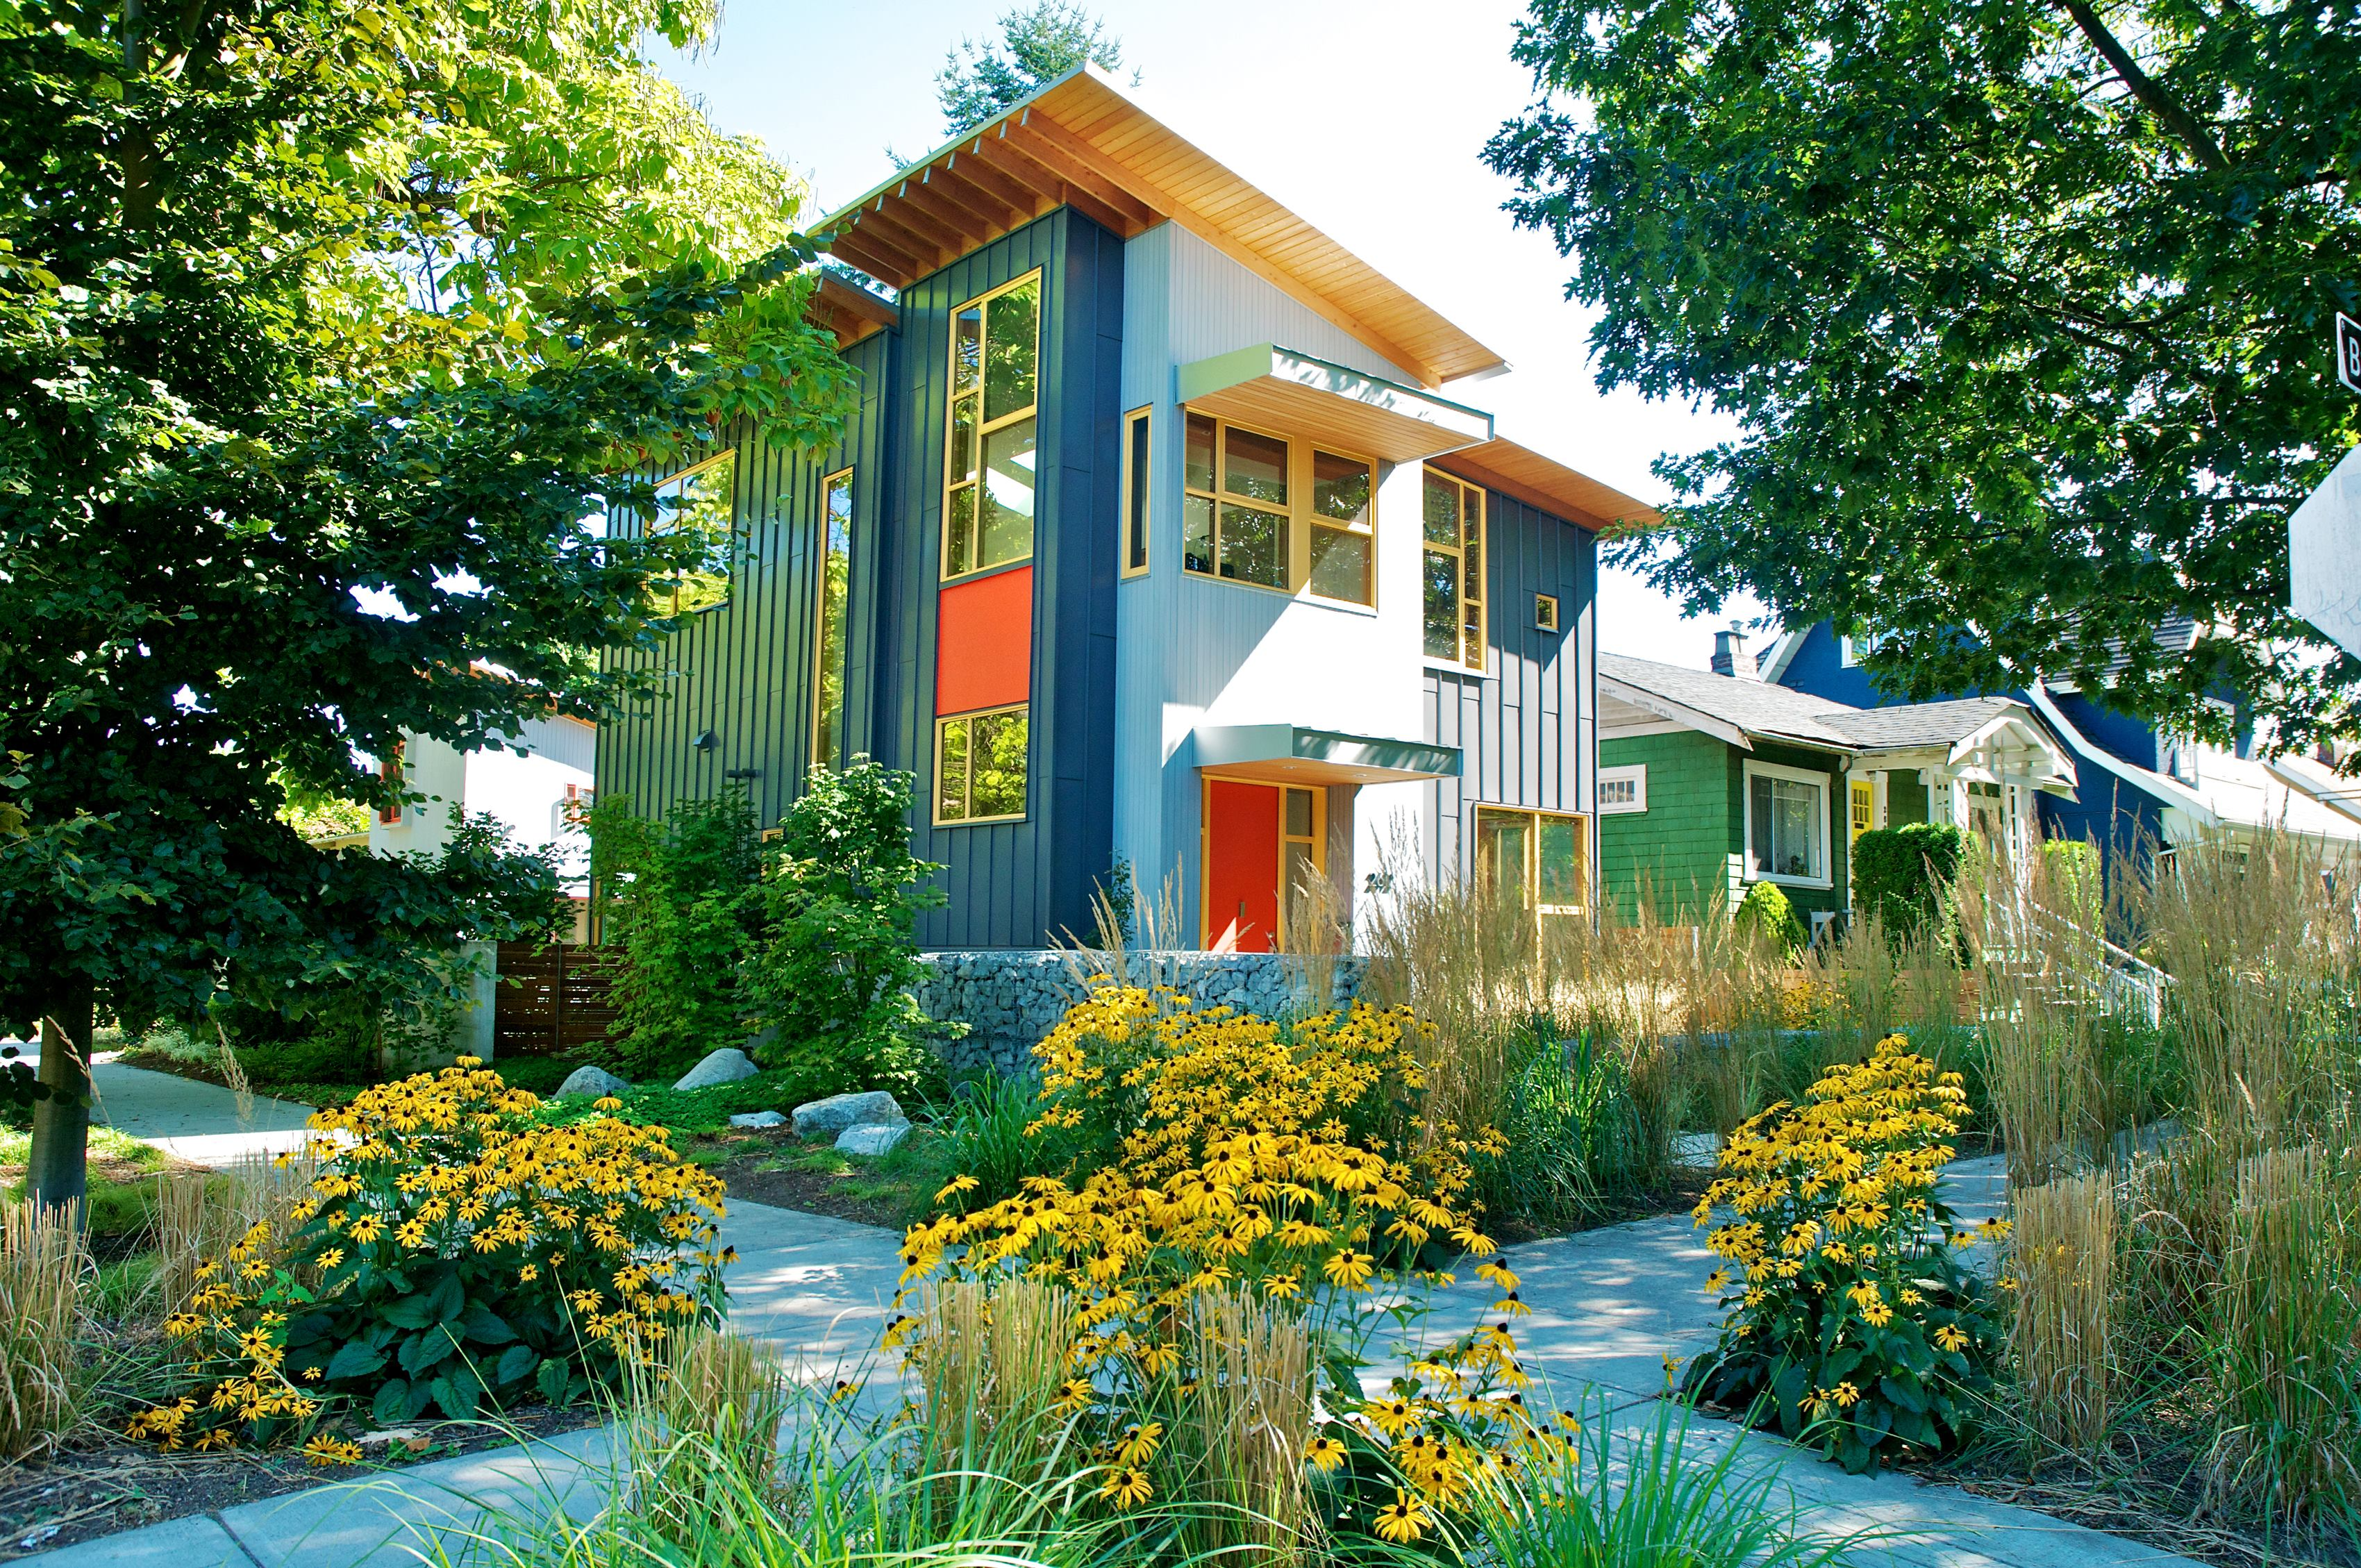 House design green - Small House Incorporates The Best Of City Living Ecobuilding Pulse Magazine Infill Outbuildings Sustainability Urban Design Green Building